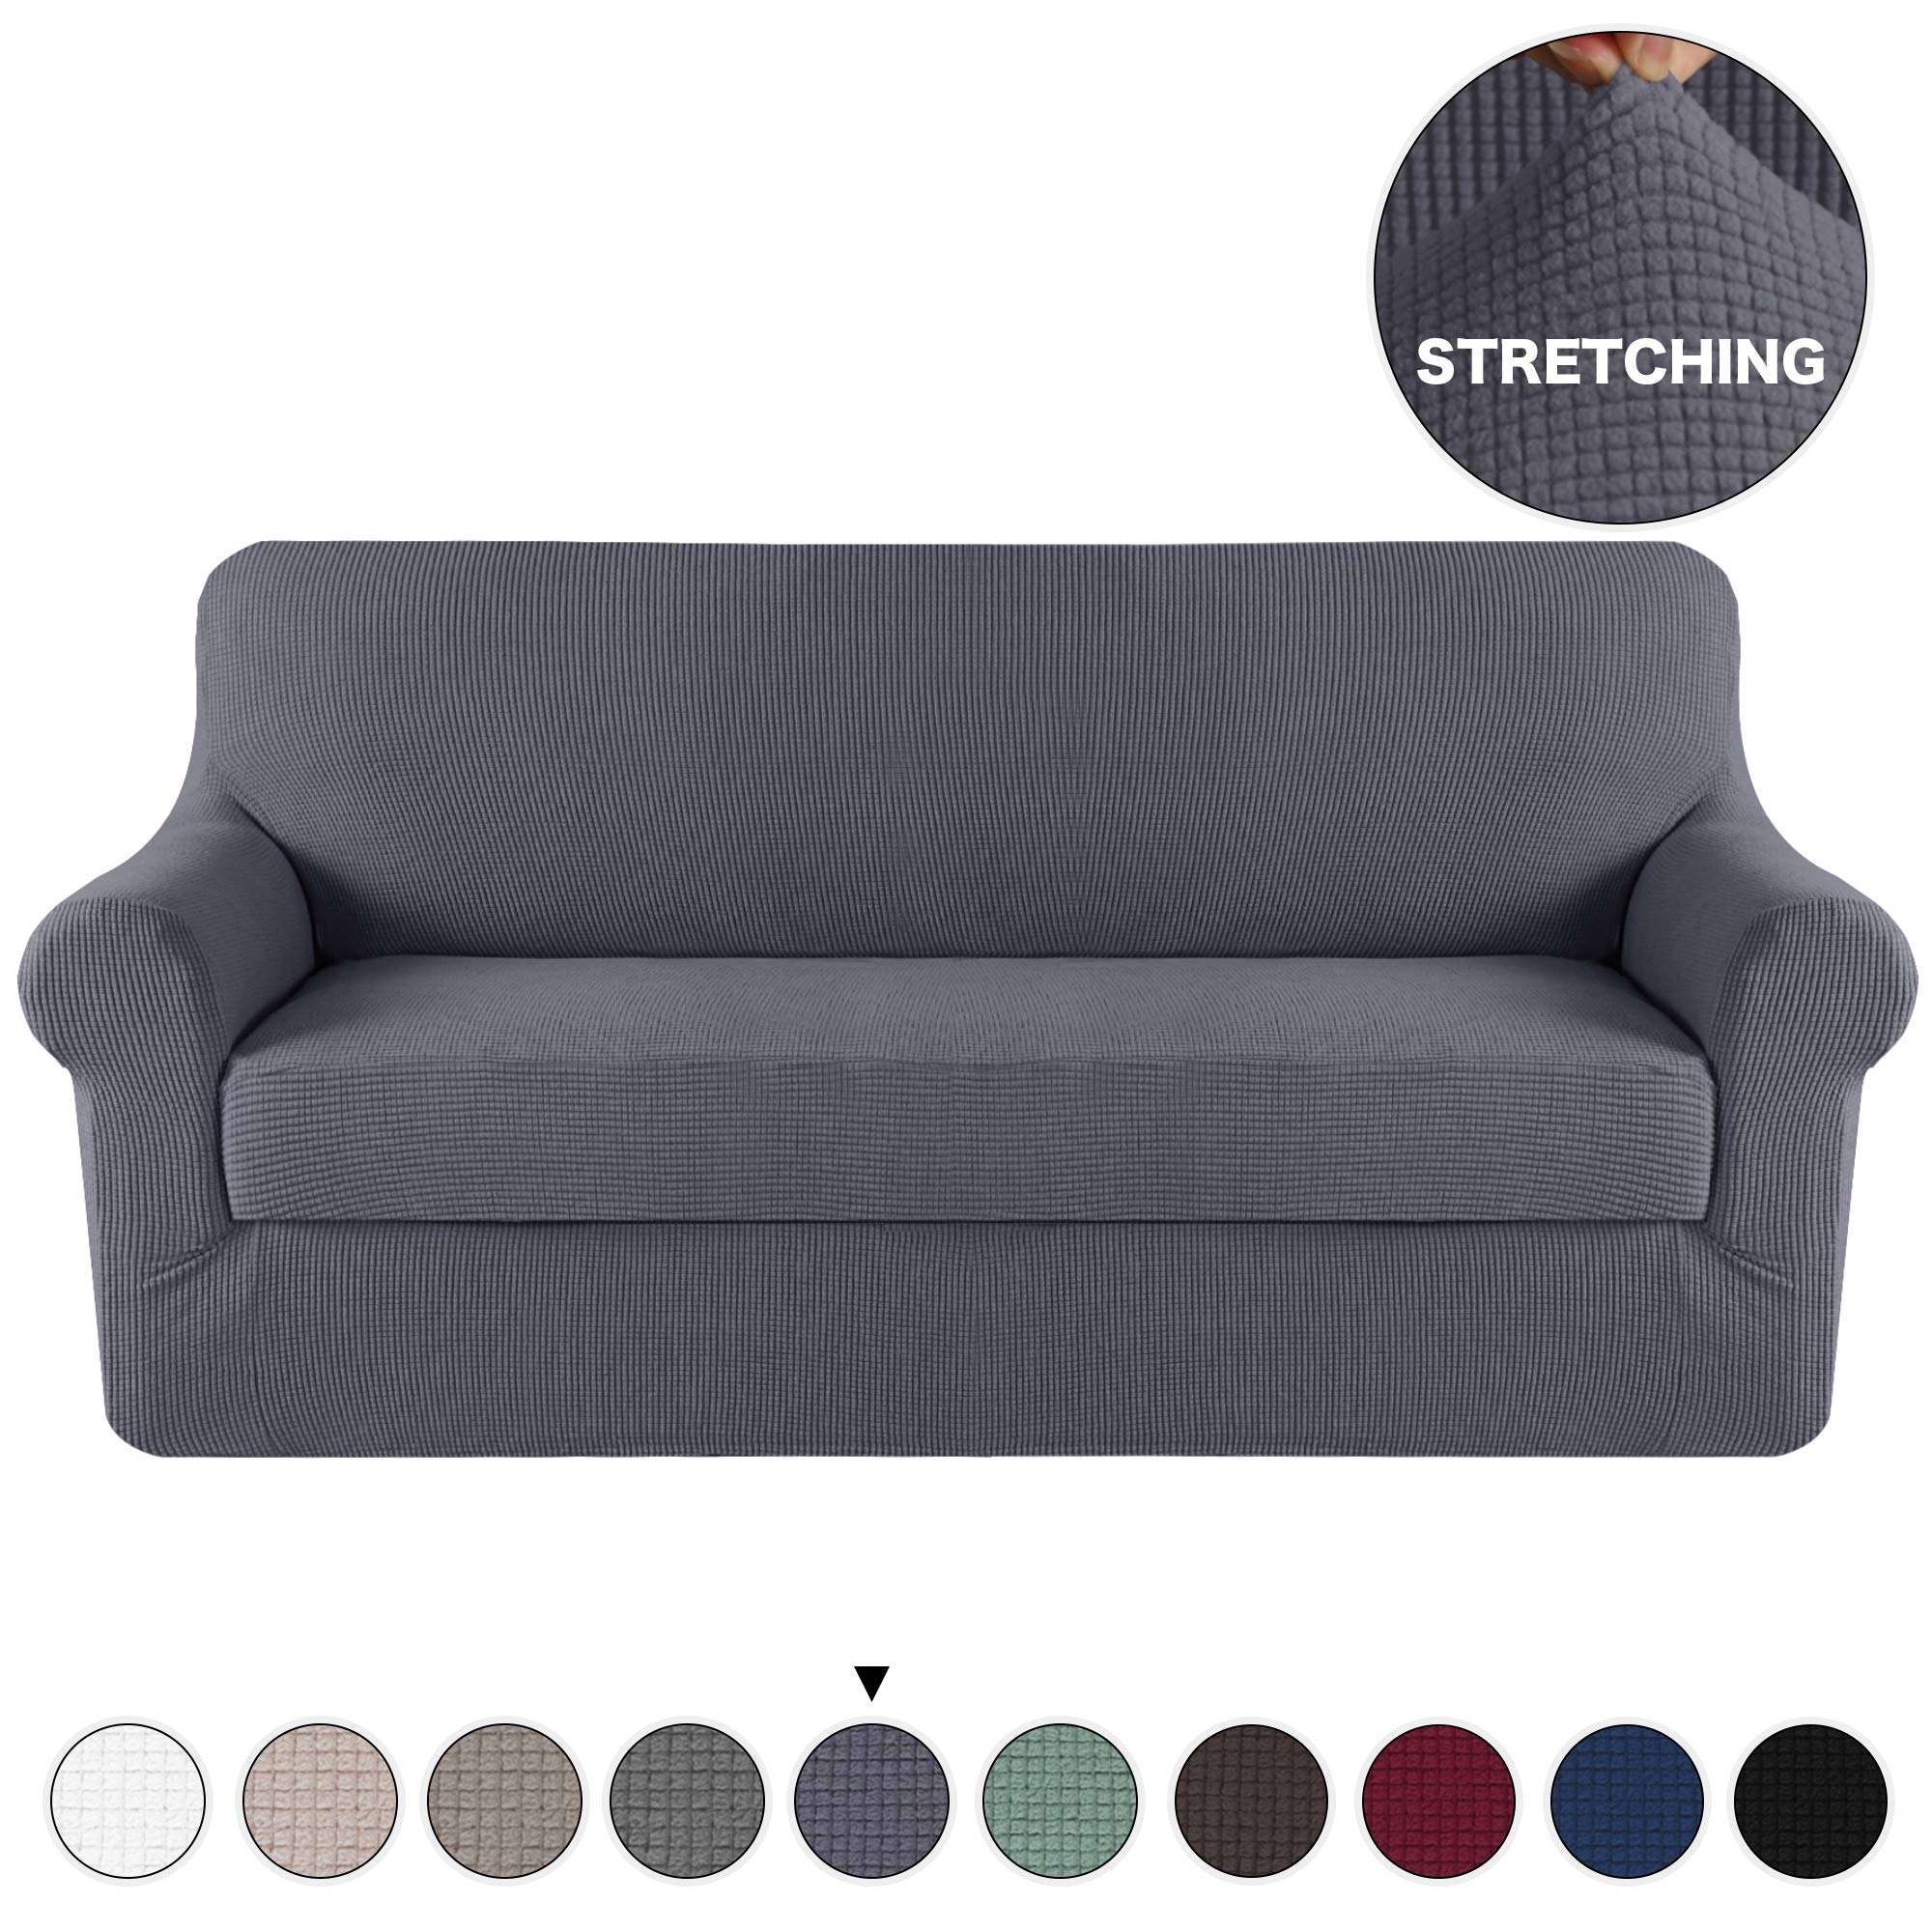 eba3a5a399faae Turquoize Grey Sofa Slipcover Stretch High Spandex Sofa Cover/Lounge Covers/ Couch Covers Furniture